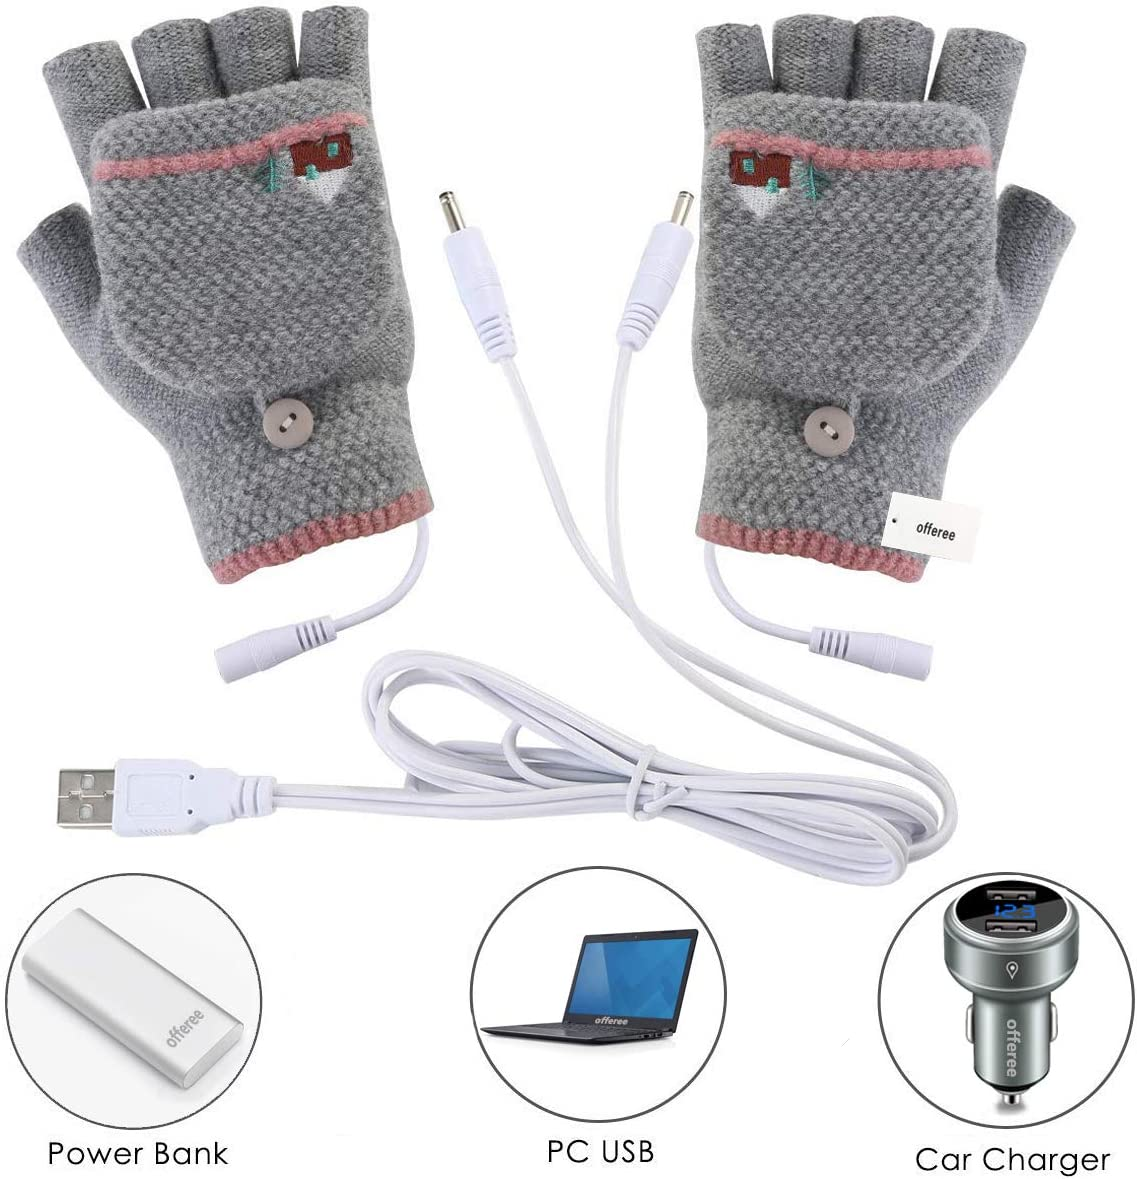 Offeree USB Heated Gloves Mitten for Women Men Half Hands Warm Laptop Gloves with Double-Sided Heating for Indoor or Outdoor Winter Usb Powered Knitting Hands Warmer Grey02